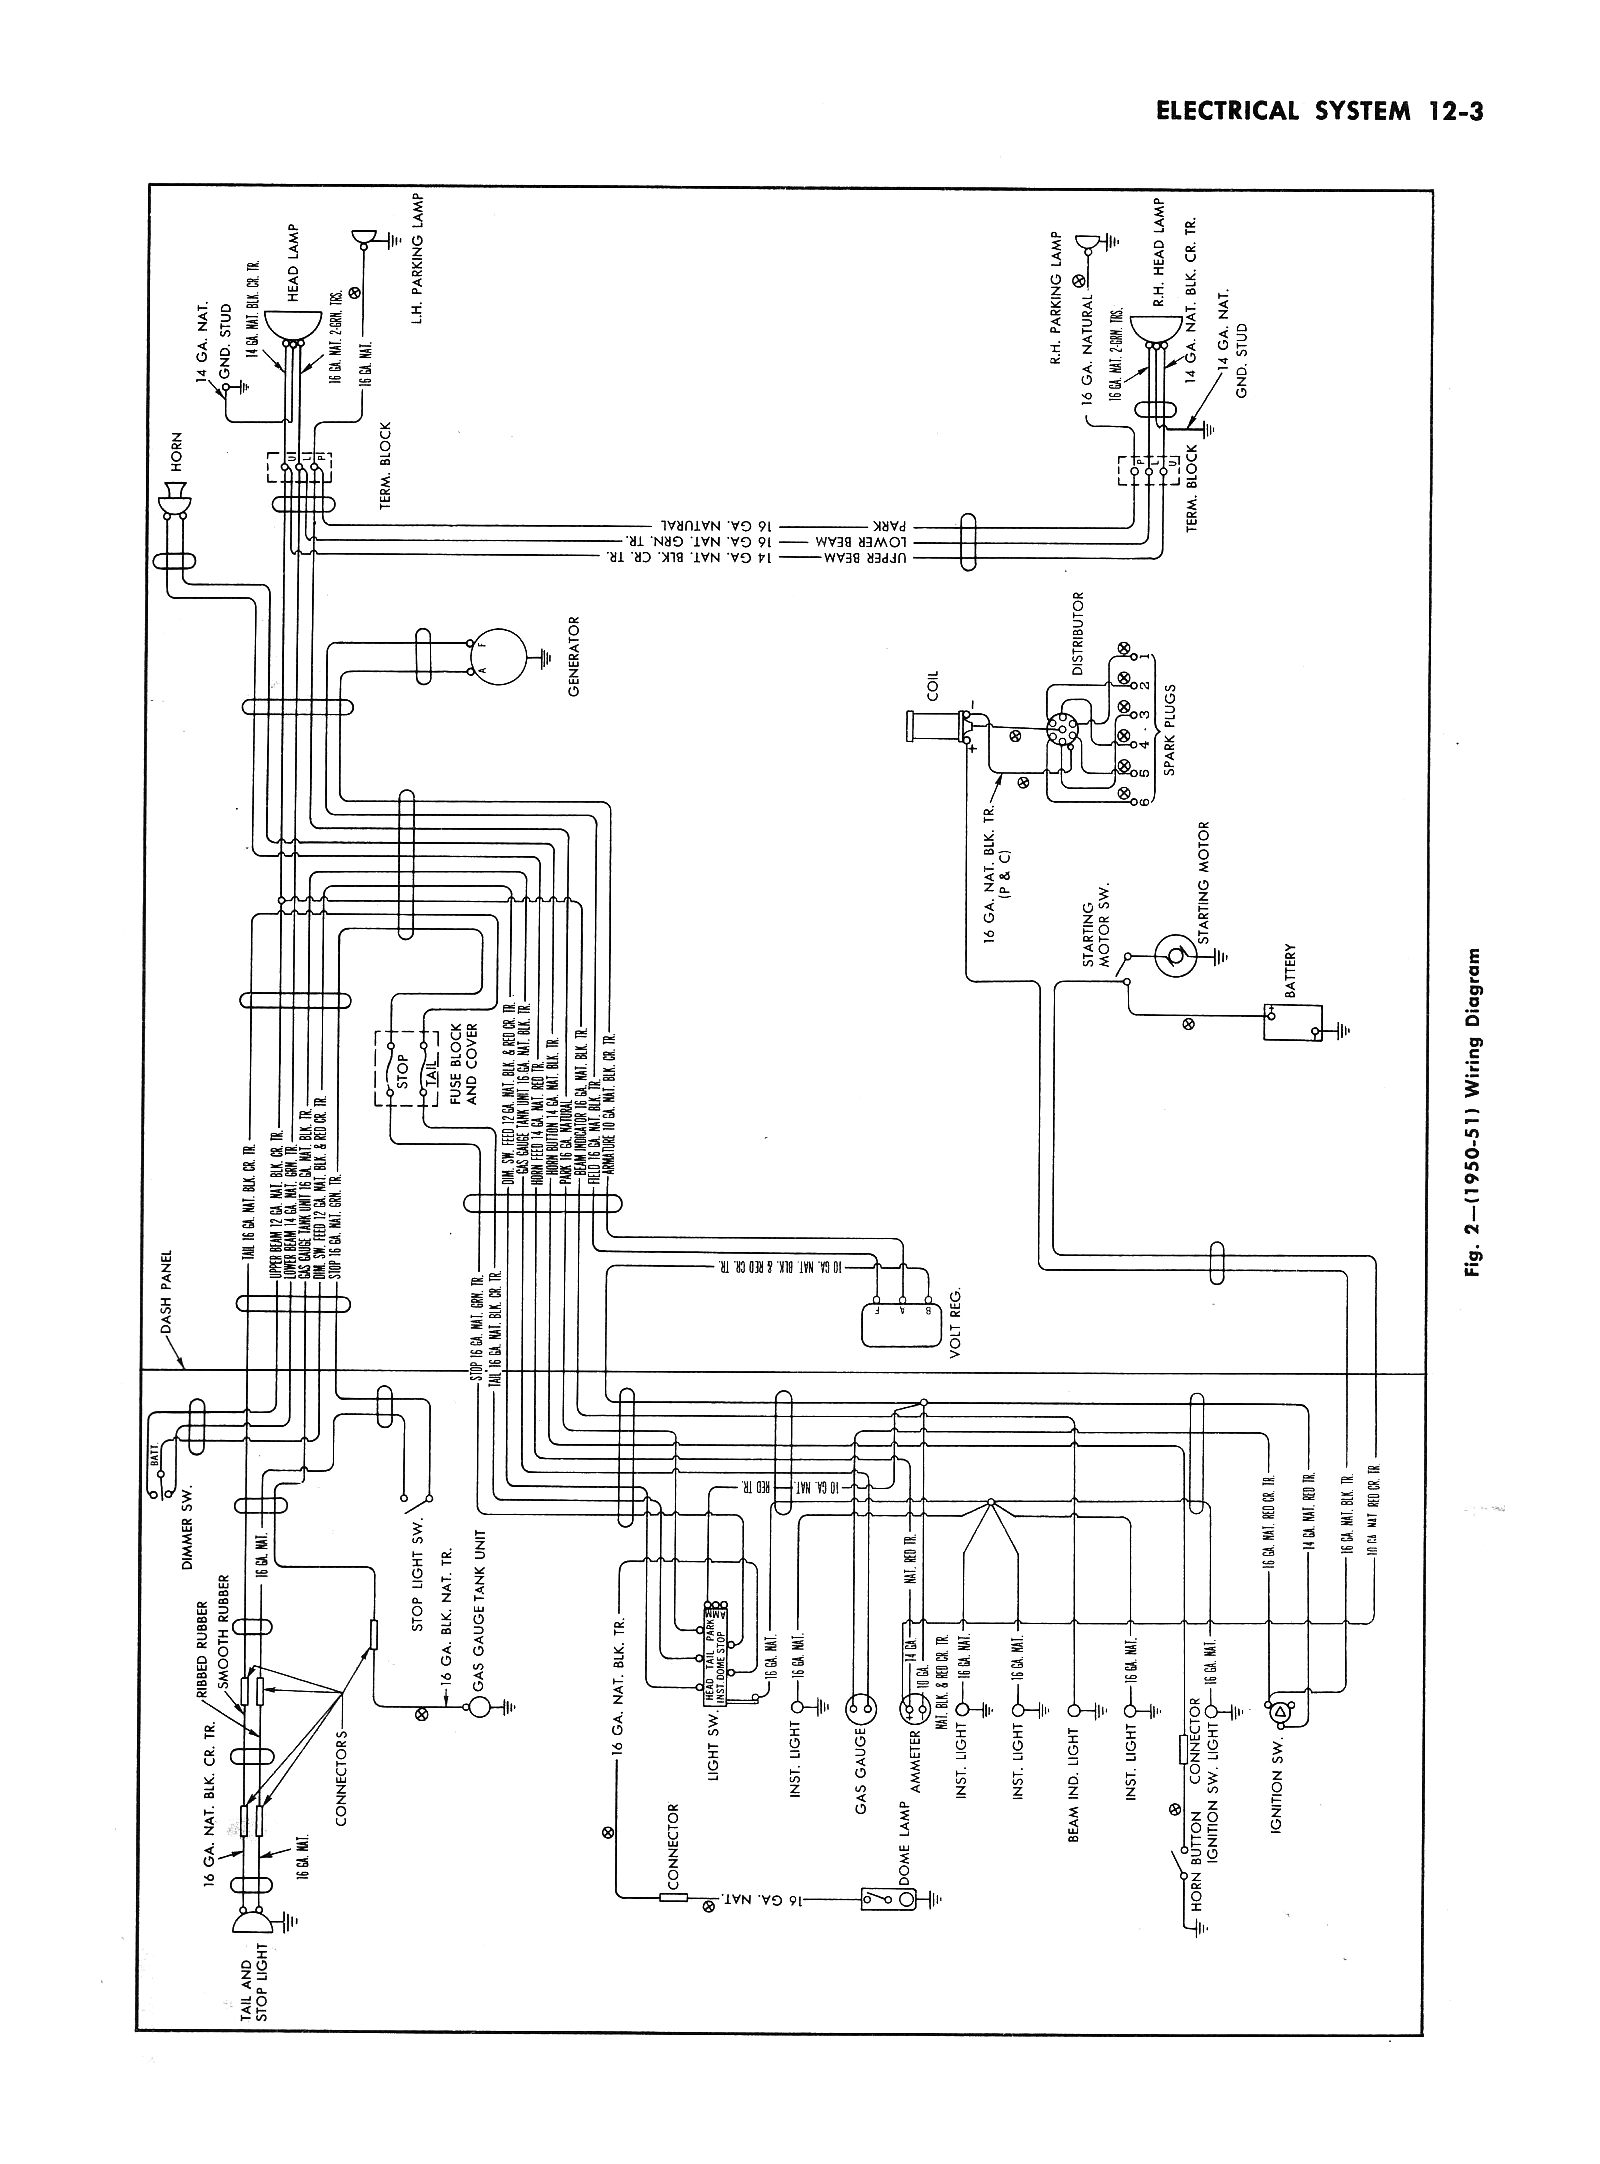 51ctsm1203 1950 chevy truck wiring harness on 1950 download wirning diagrams chevy truck wiring harness at aneh.co